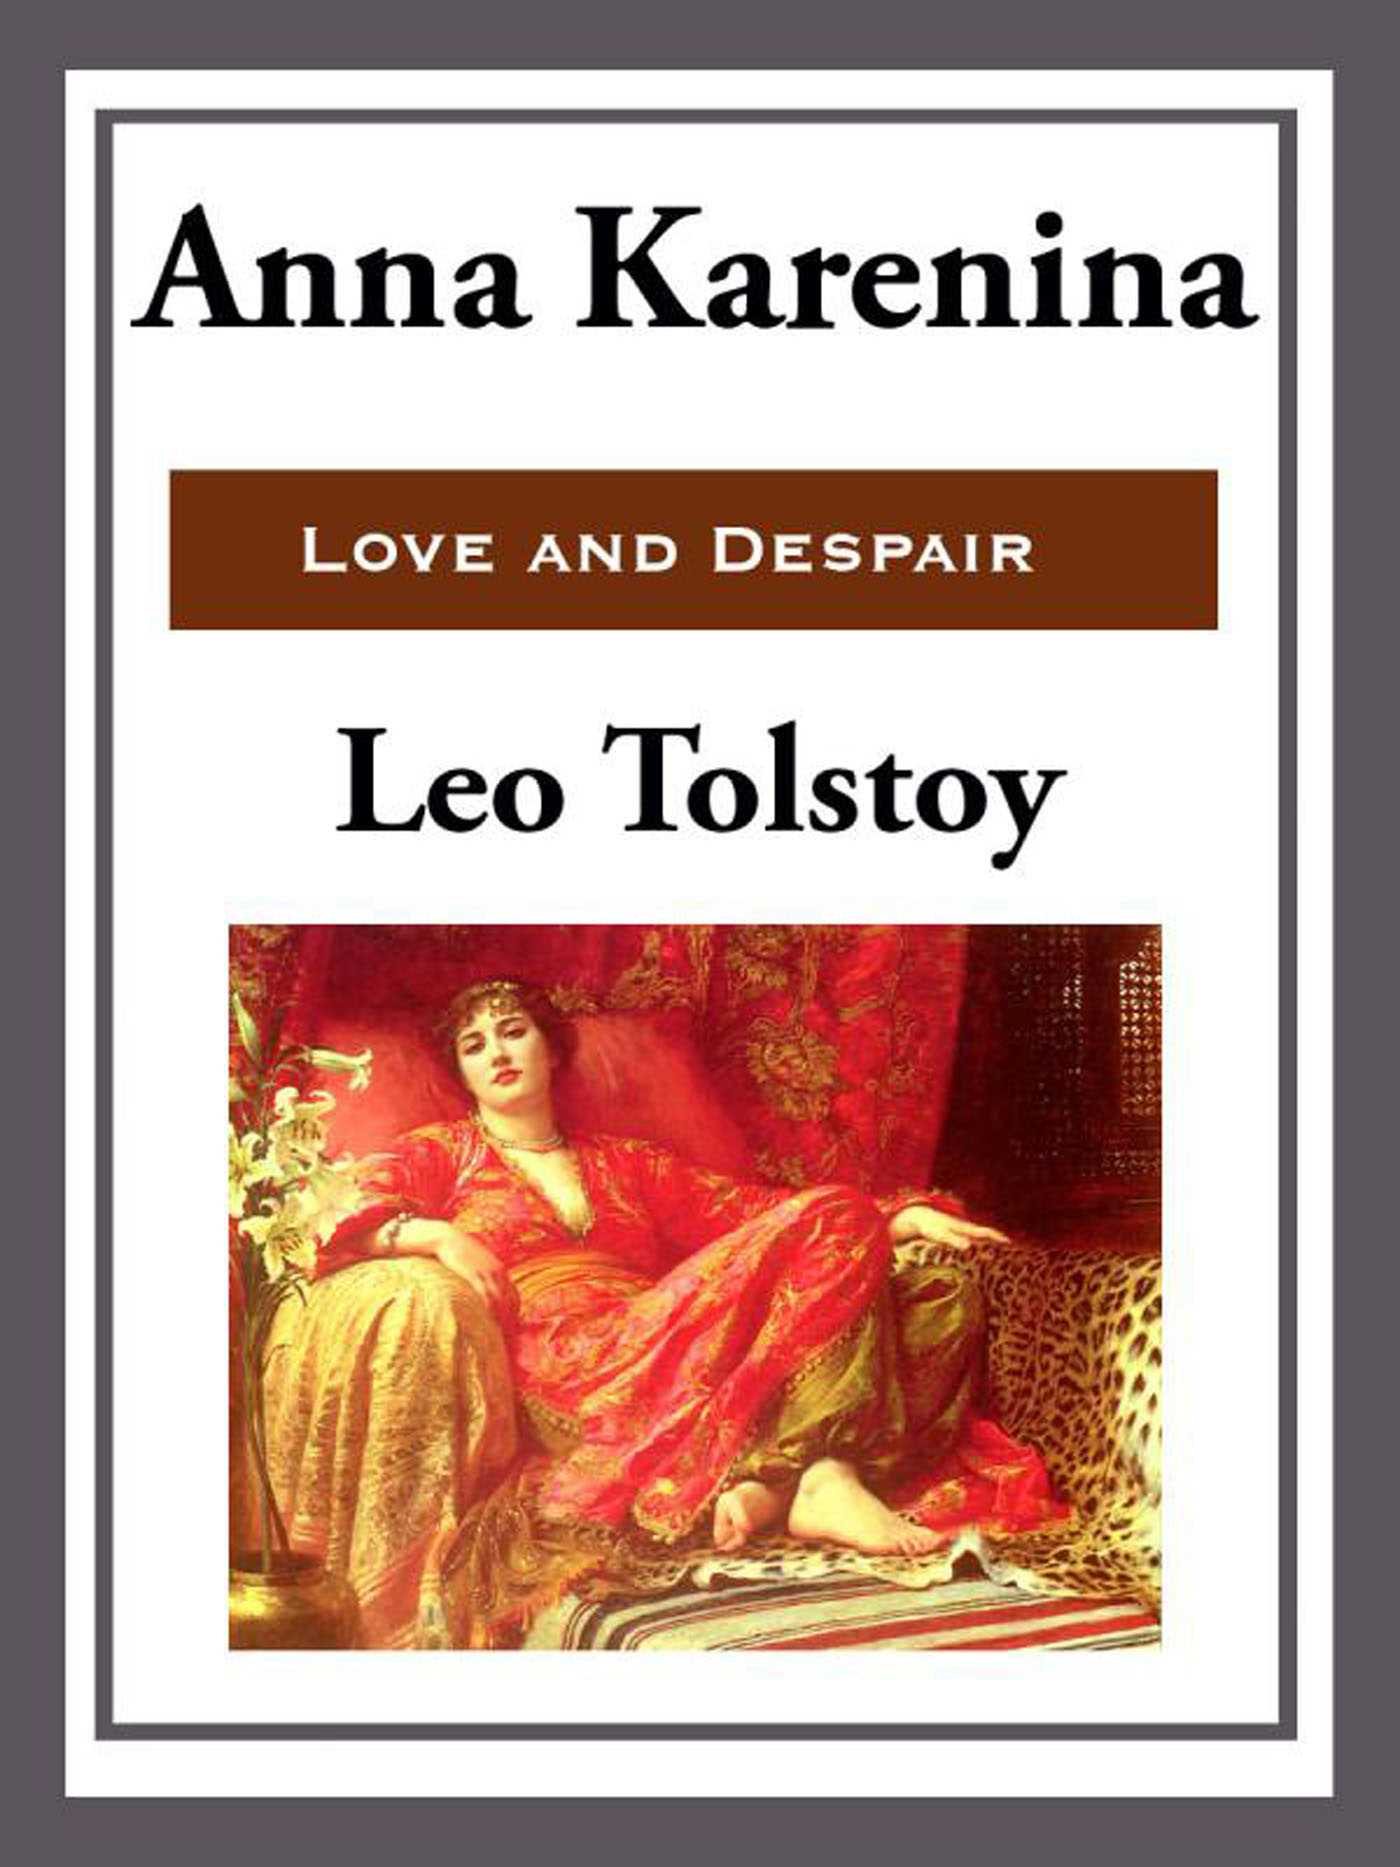 an analysis of social conflicts in anna karenina by leo tolstoy